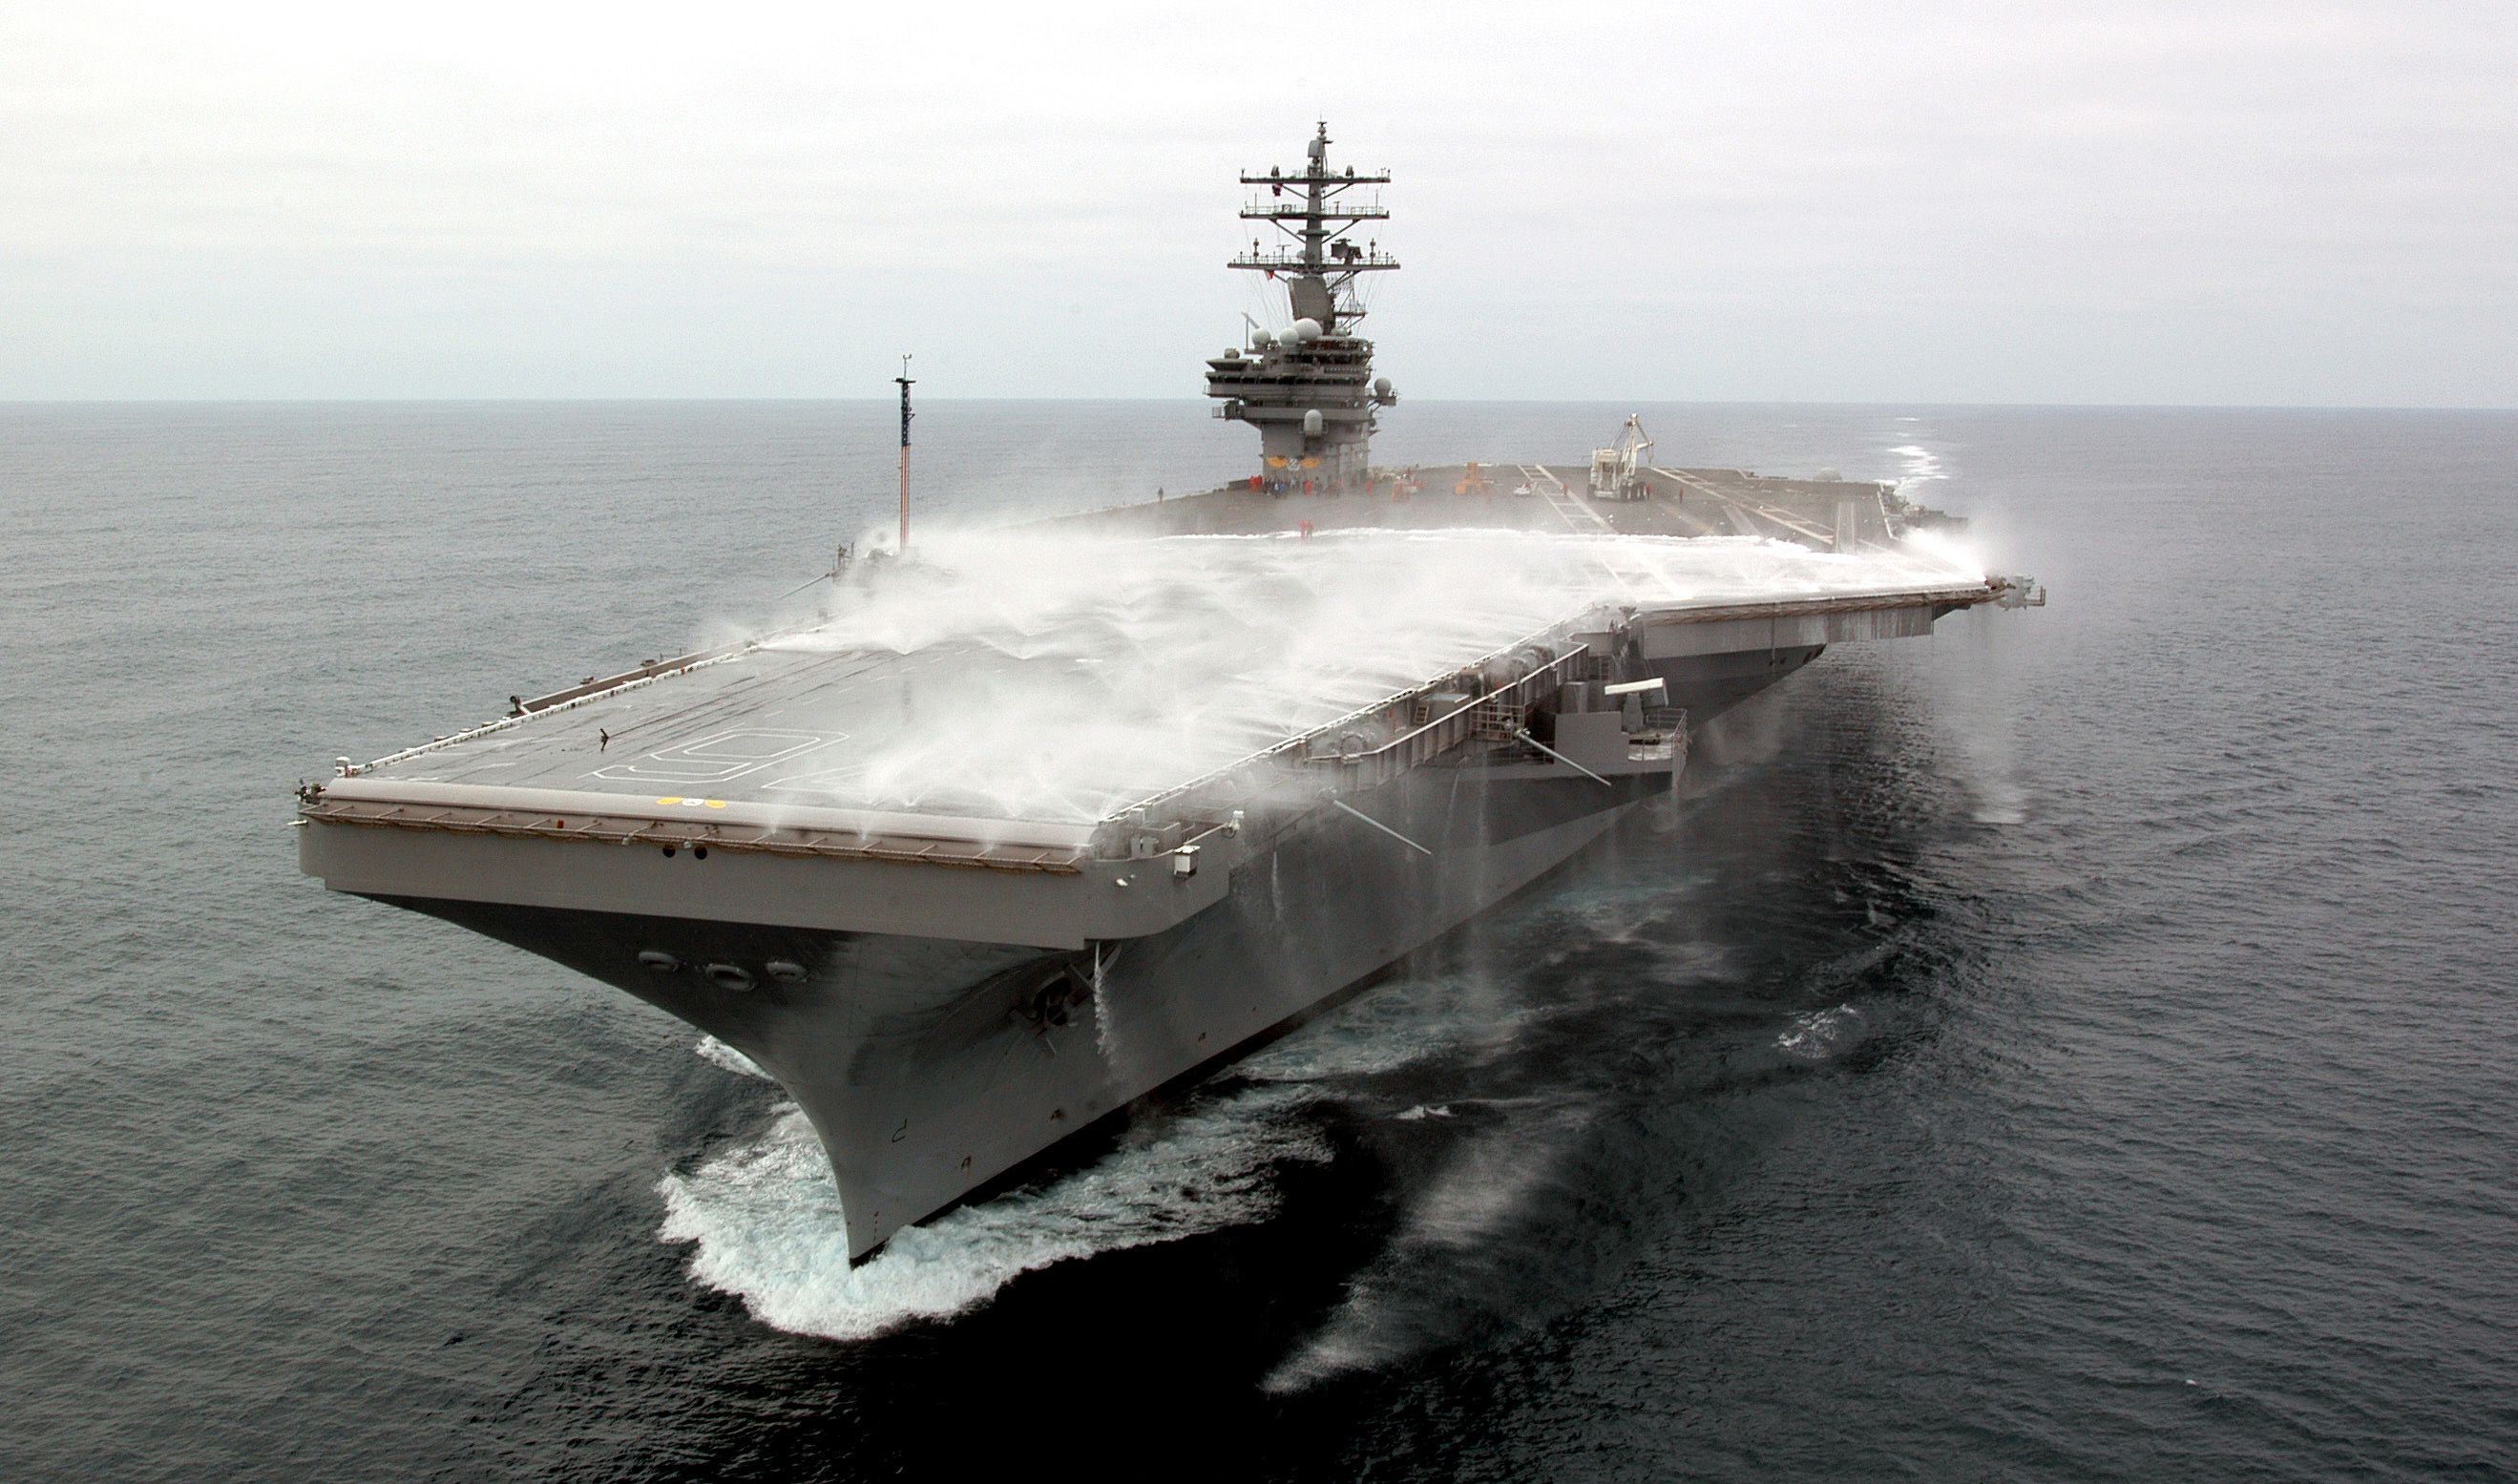 Wallpaper ships usa navy uss ronald reagan cvn images for us aircraft carrier wallpaper ships usa navy sciox Gallery